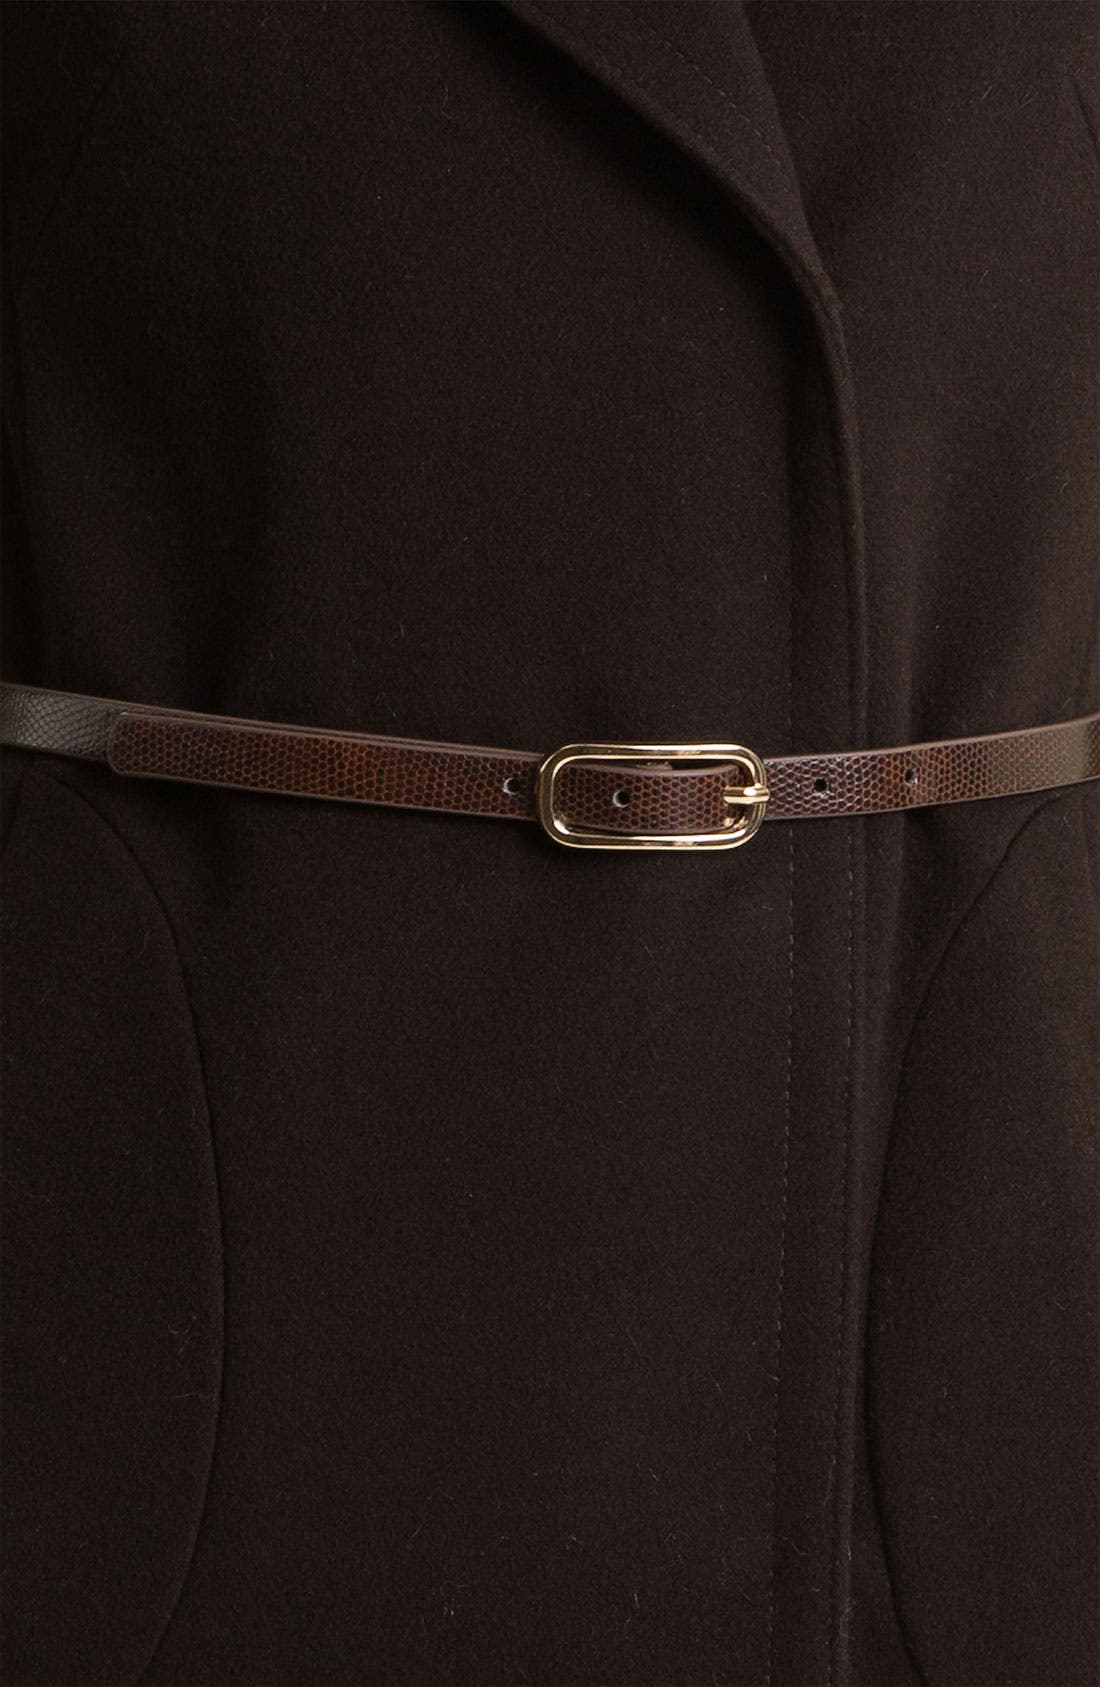 'Kate' Belted Notch Collar Coat,                             Alternate thumbnail 2, color,                             200